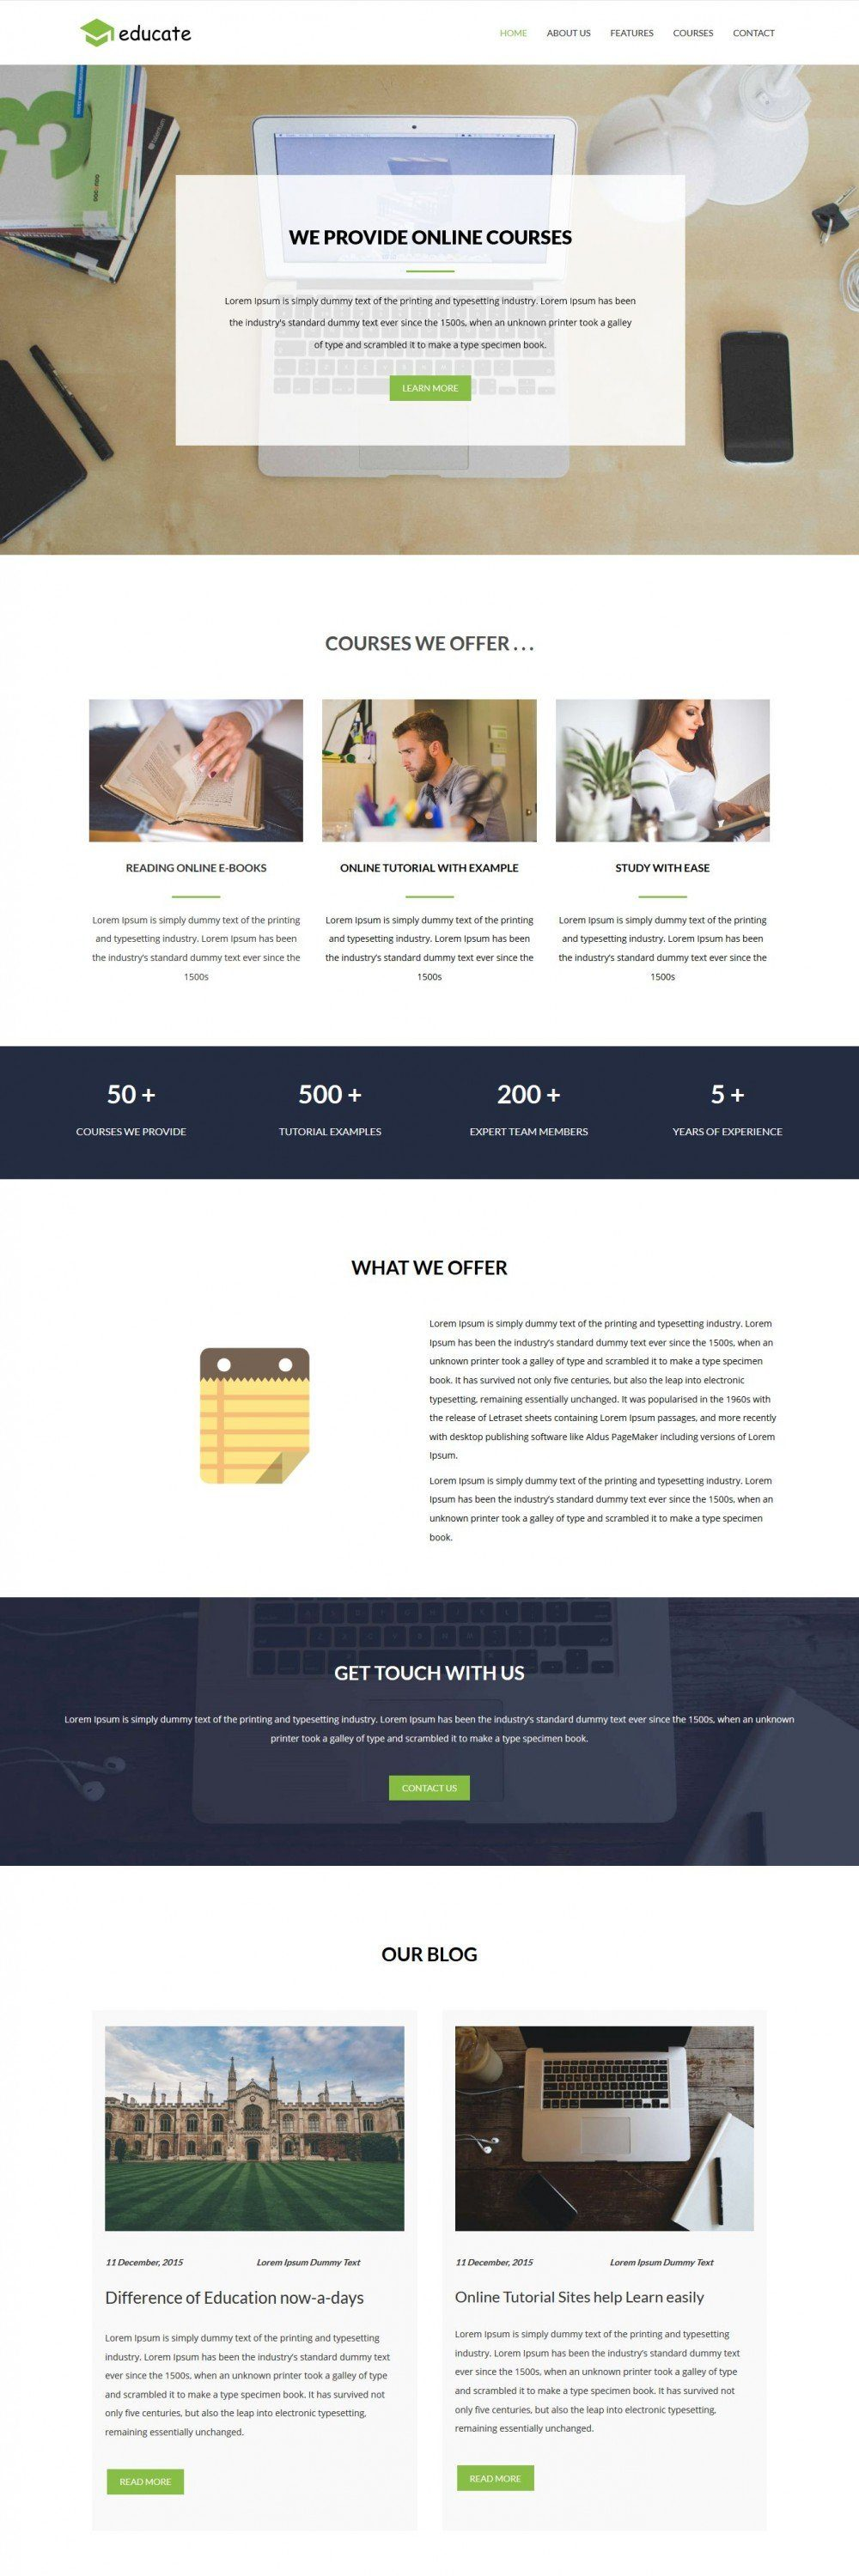 Educate Educational Courses Center HTML Template